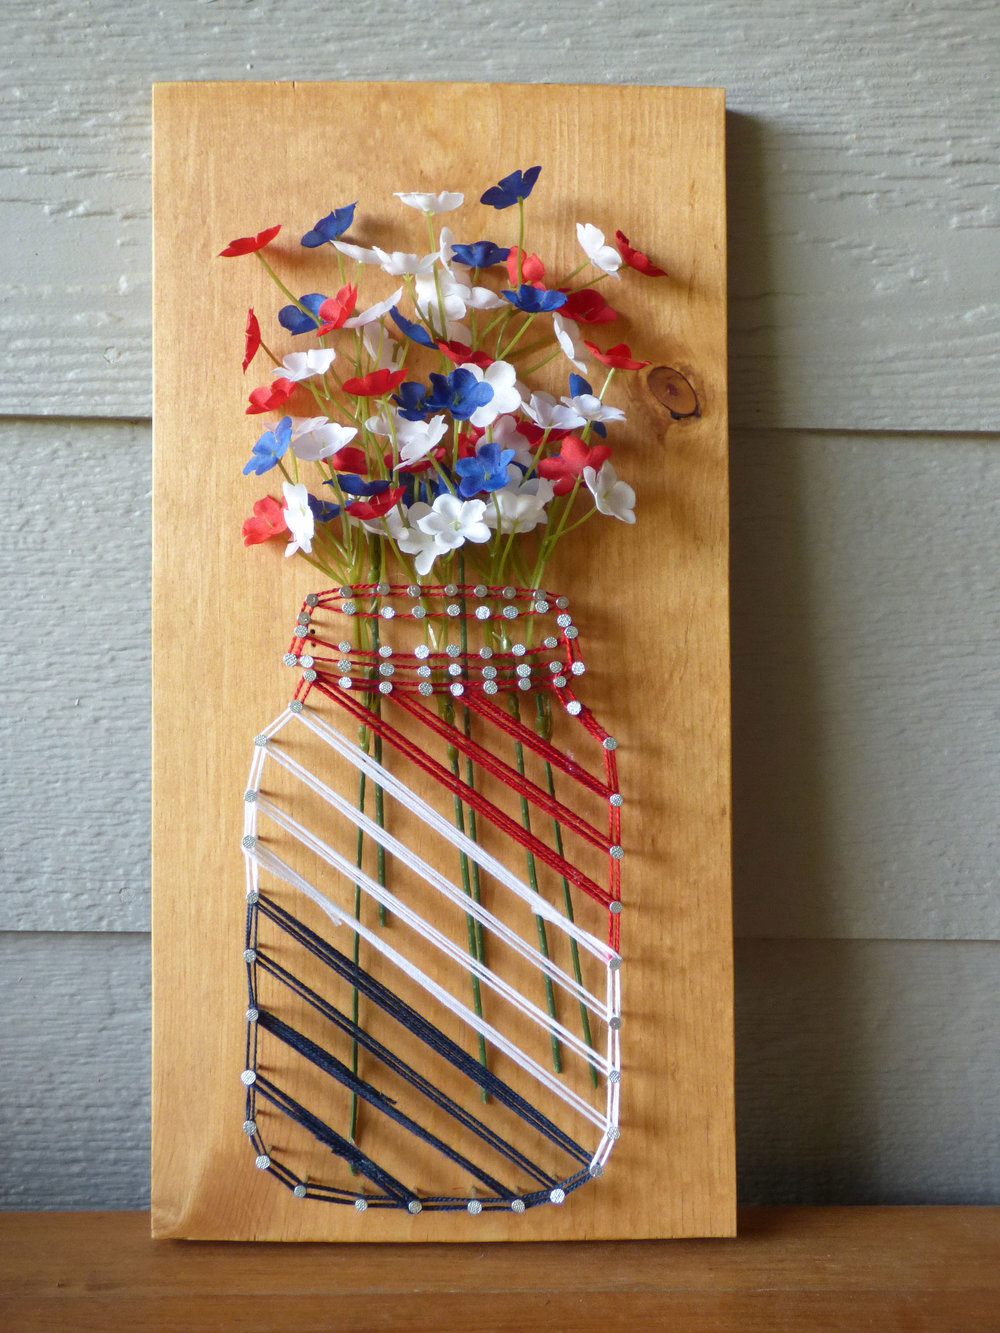 How to make a Mason Jar String Art Flower Vase